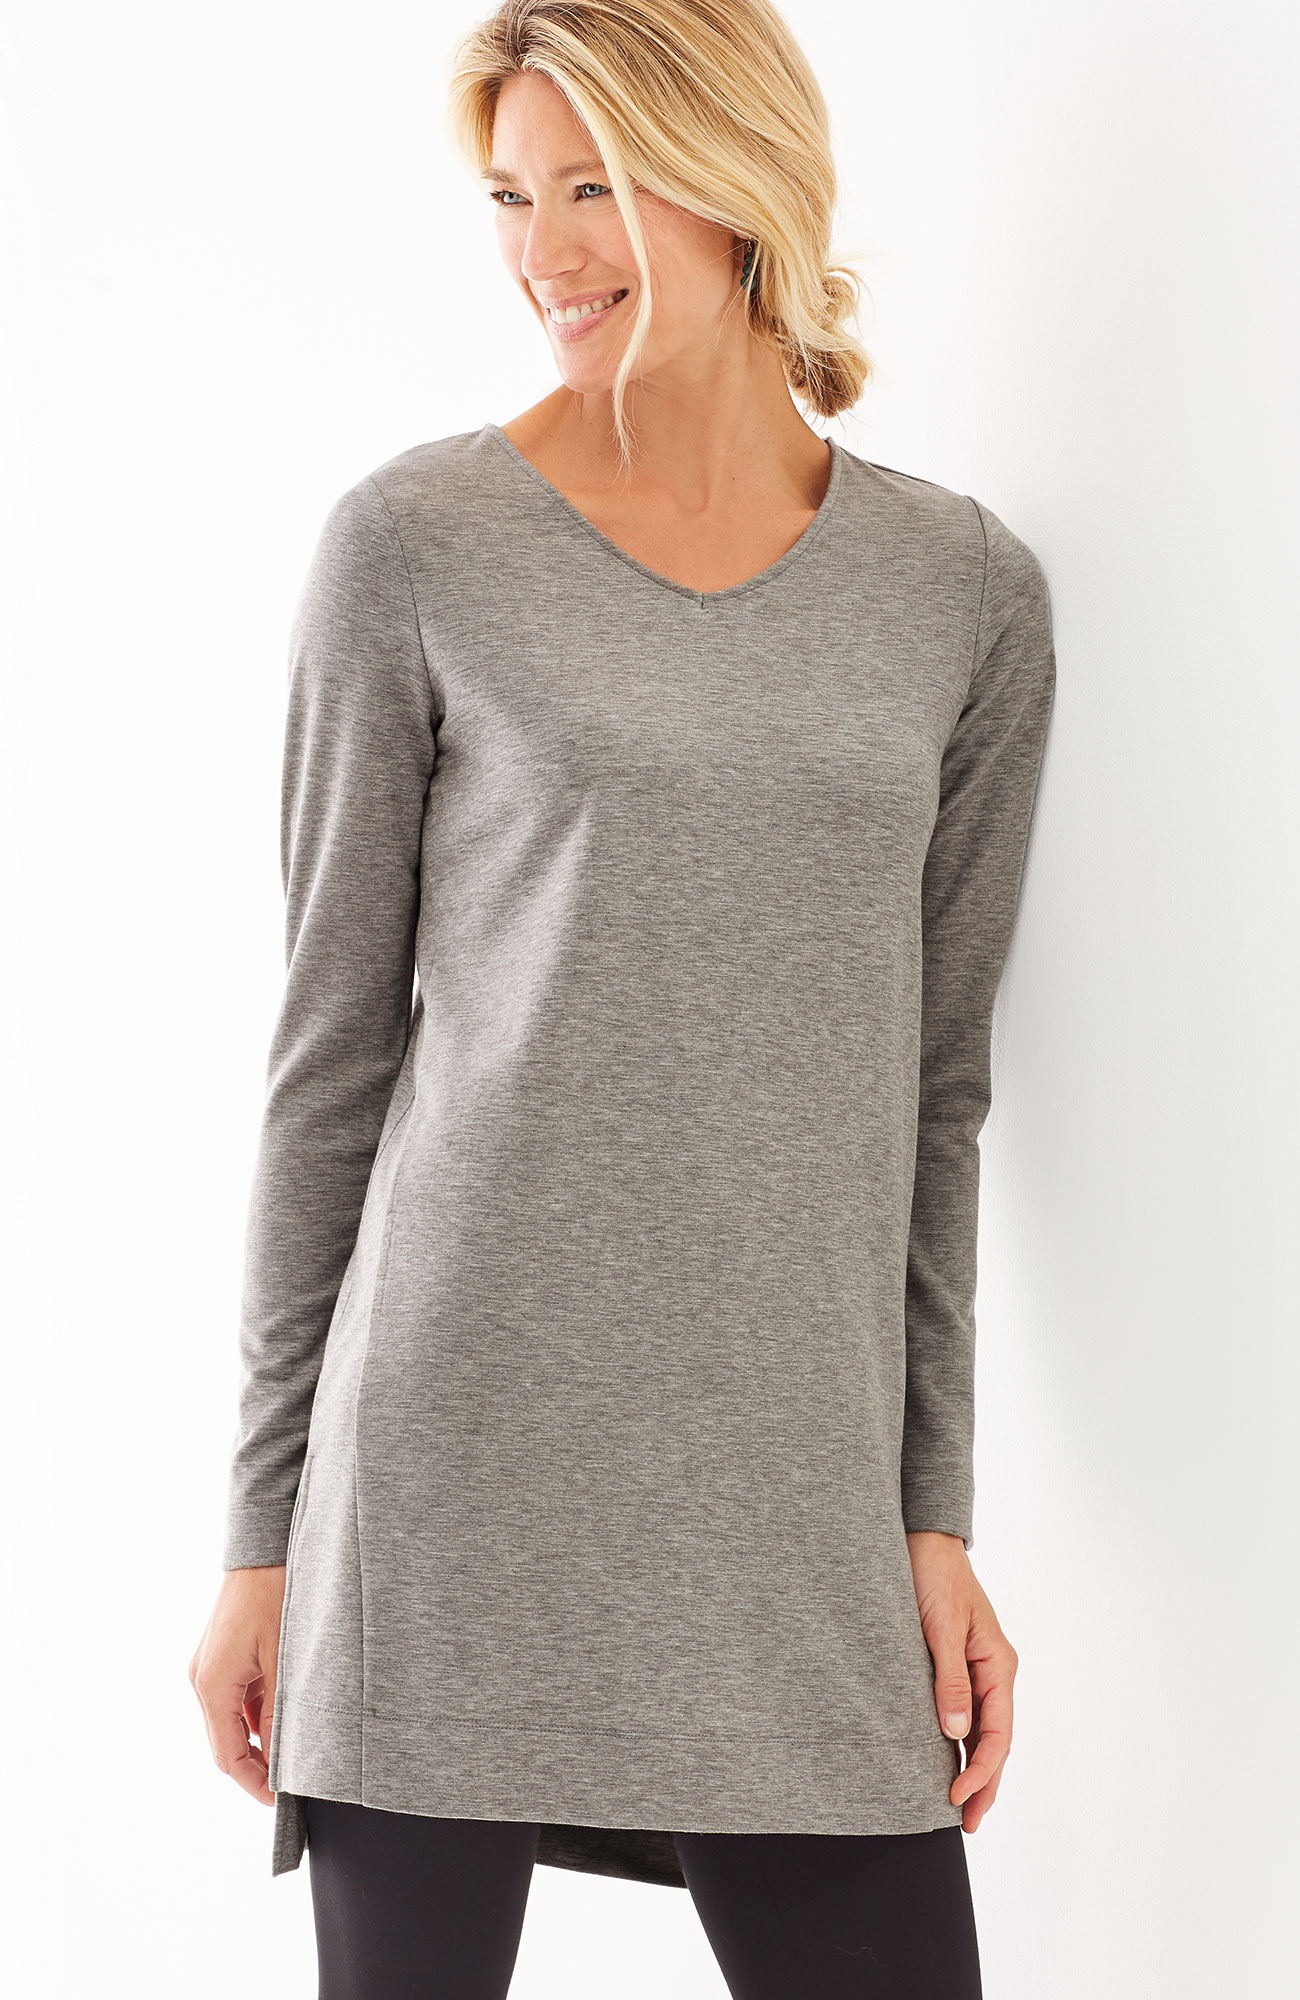 Pure Jill Luxe Tencel® V-neck tunic